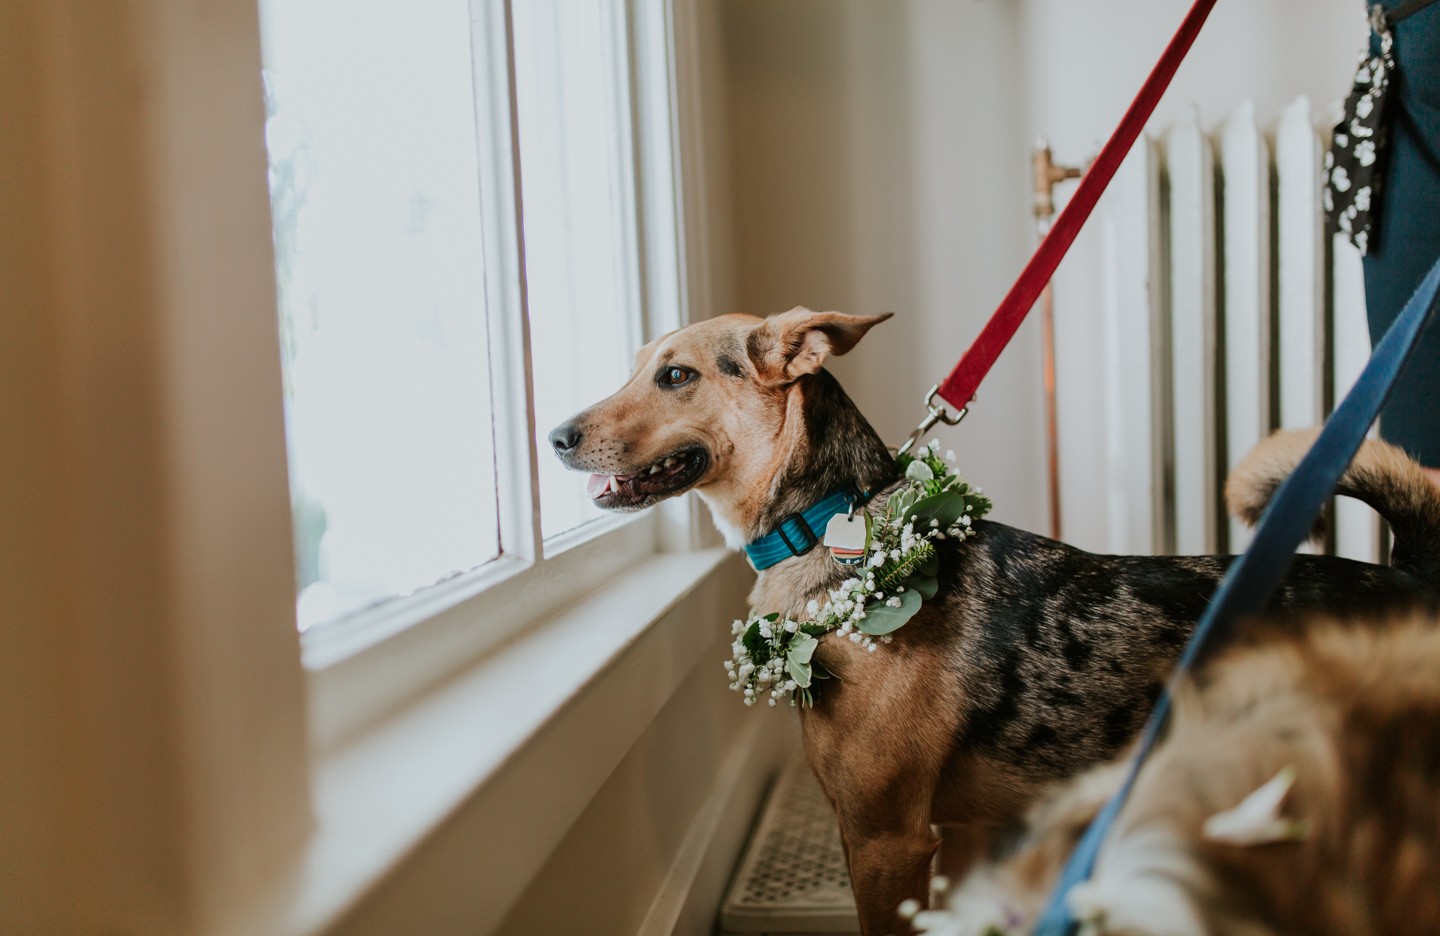 lola-grace-photography-dog-intimate-wedding-9.jpg